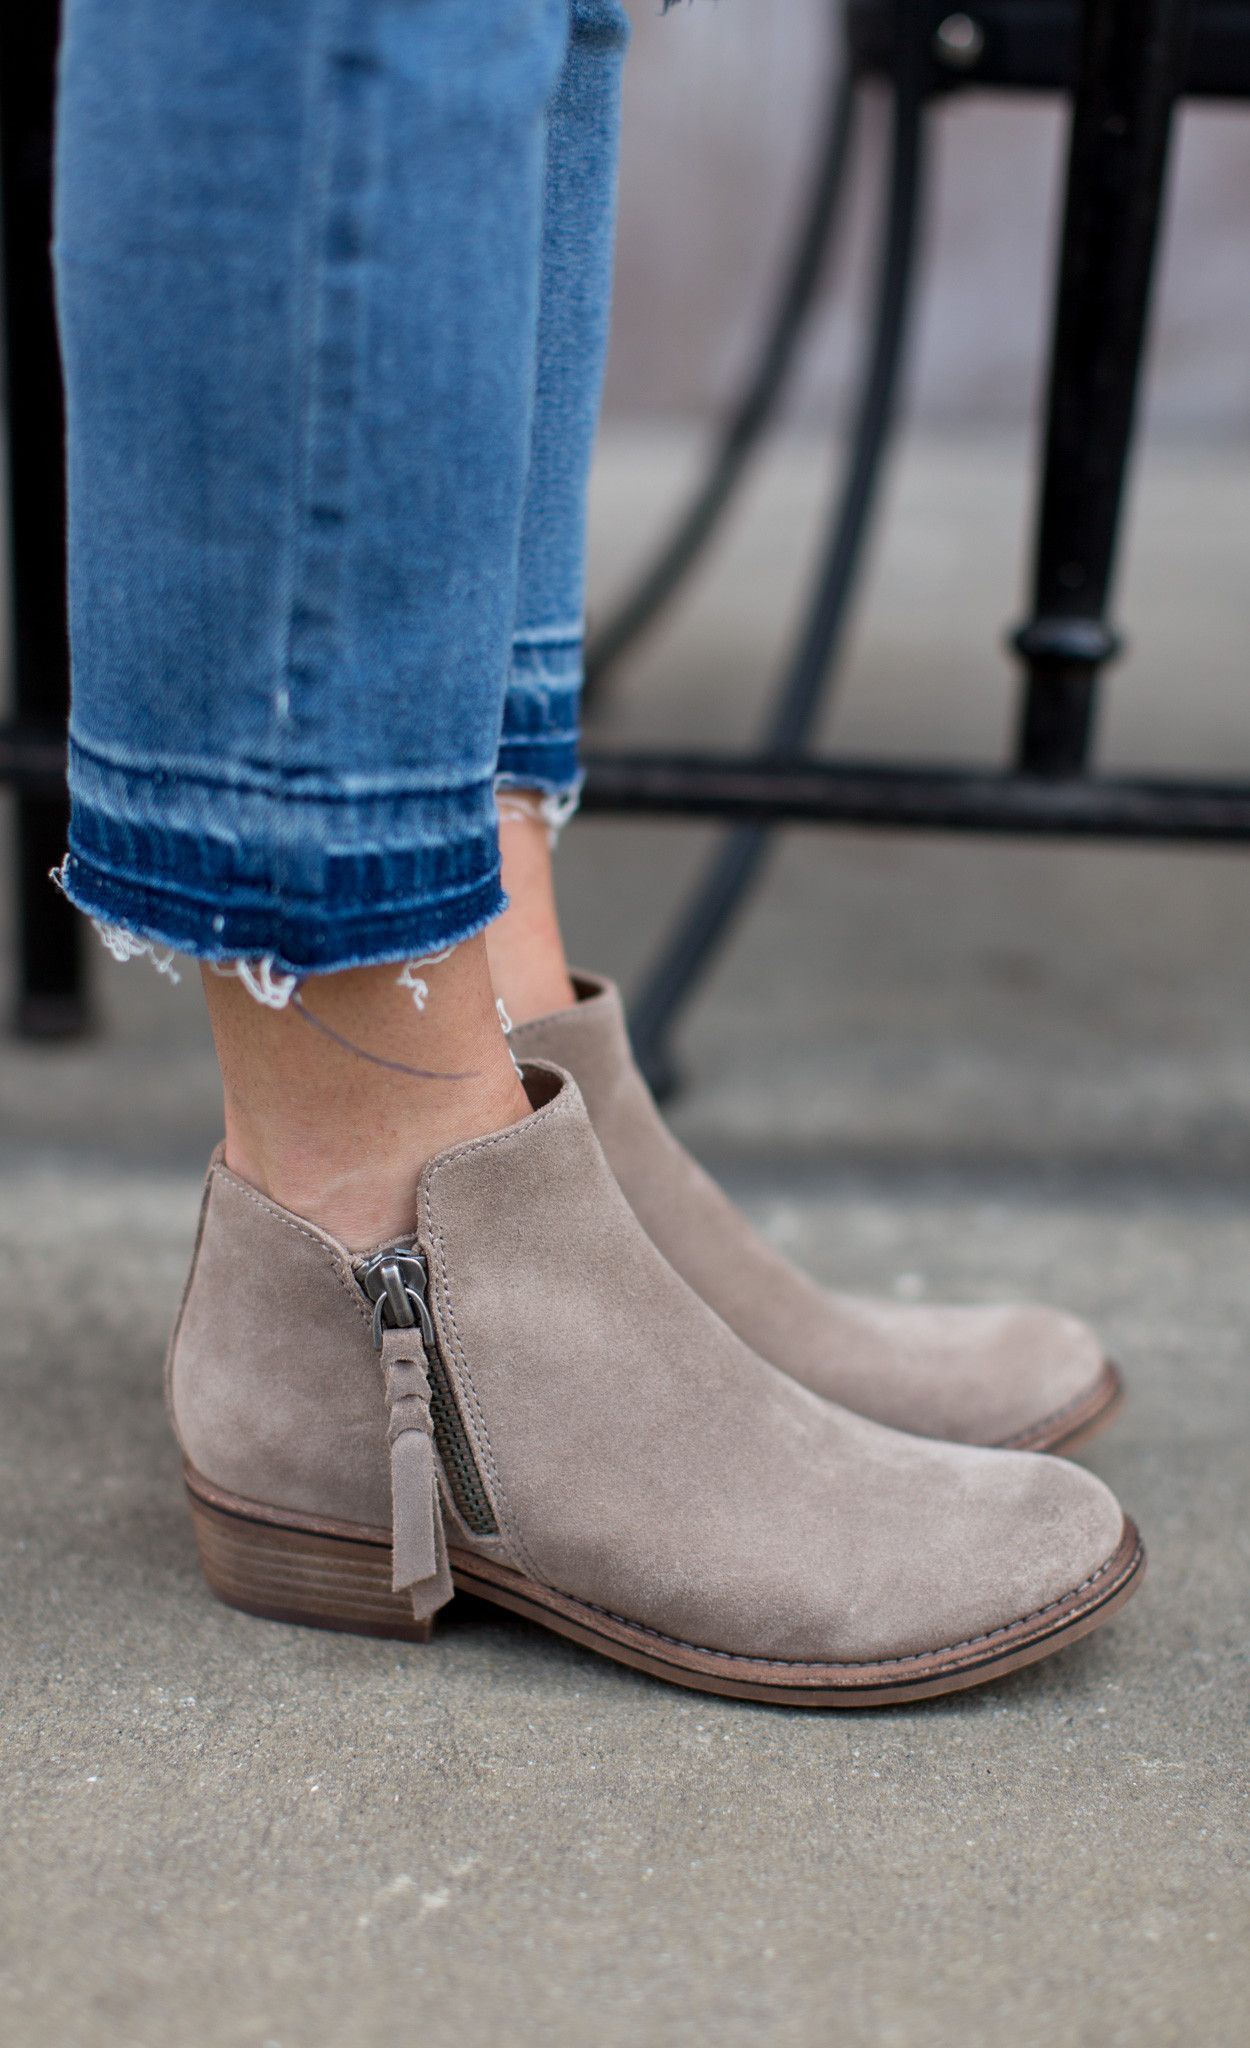 6c015850b06 Want. Need. Got to have. The Dolce Vita Sutton Bootie is going to be ...